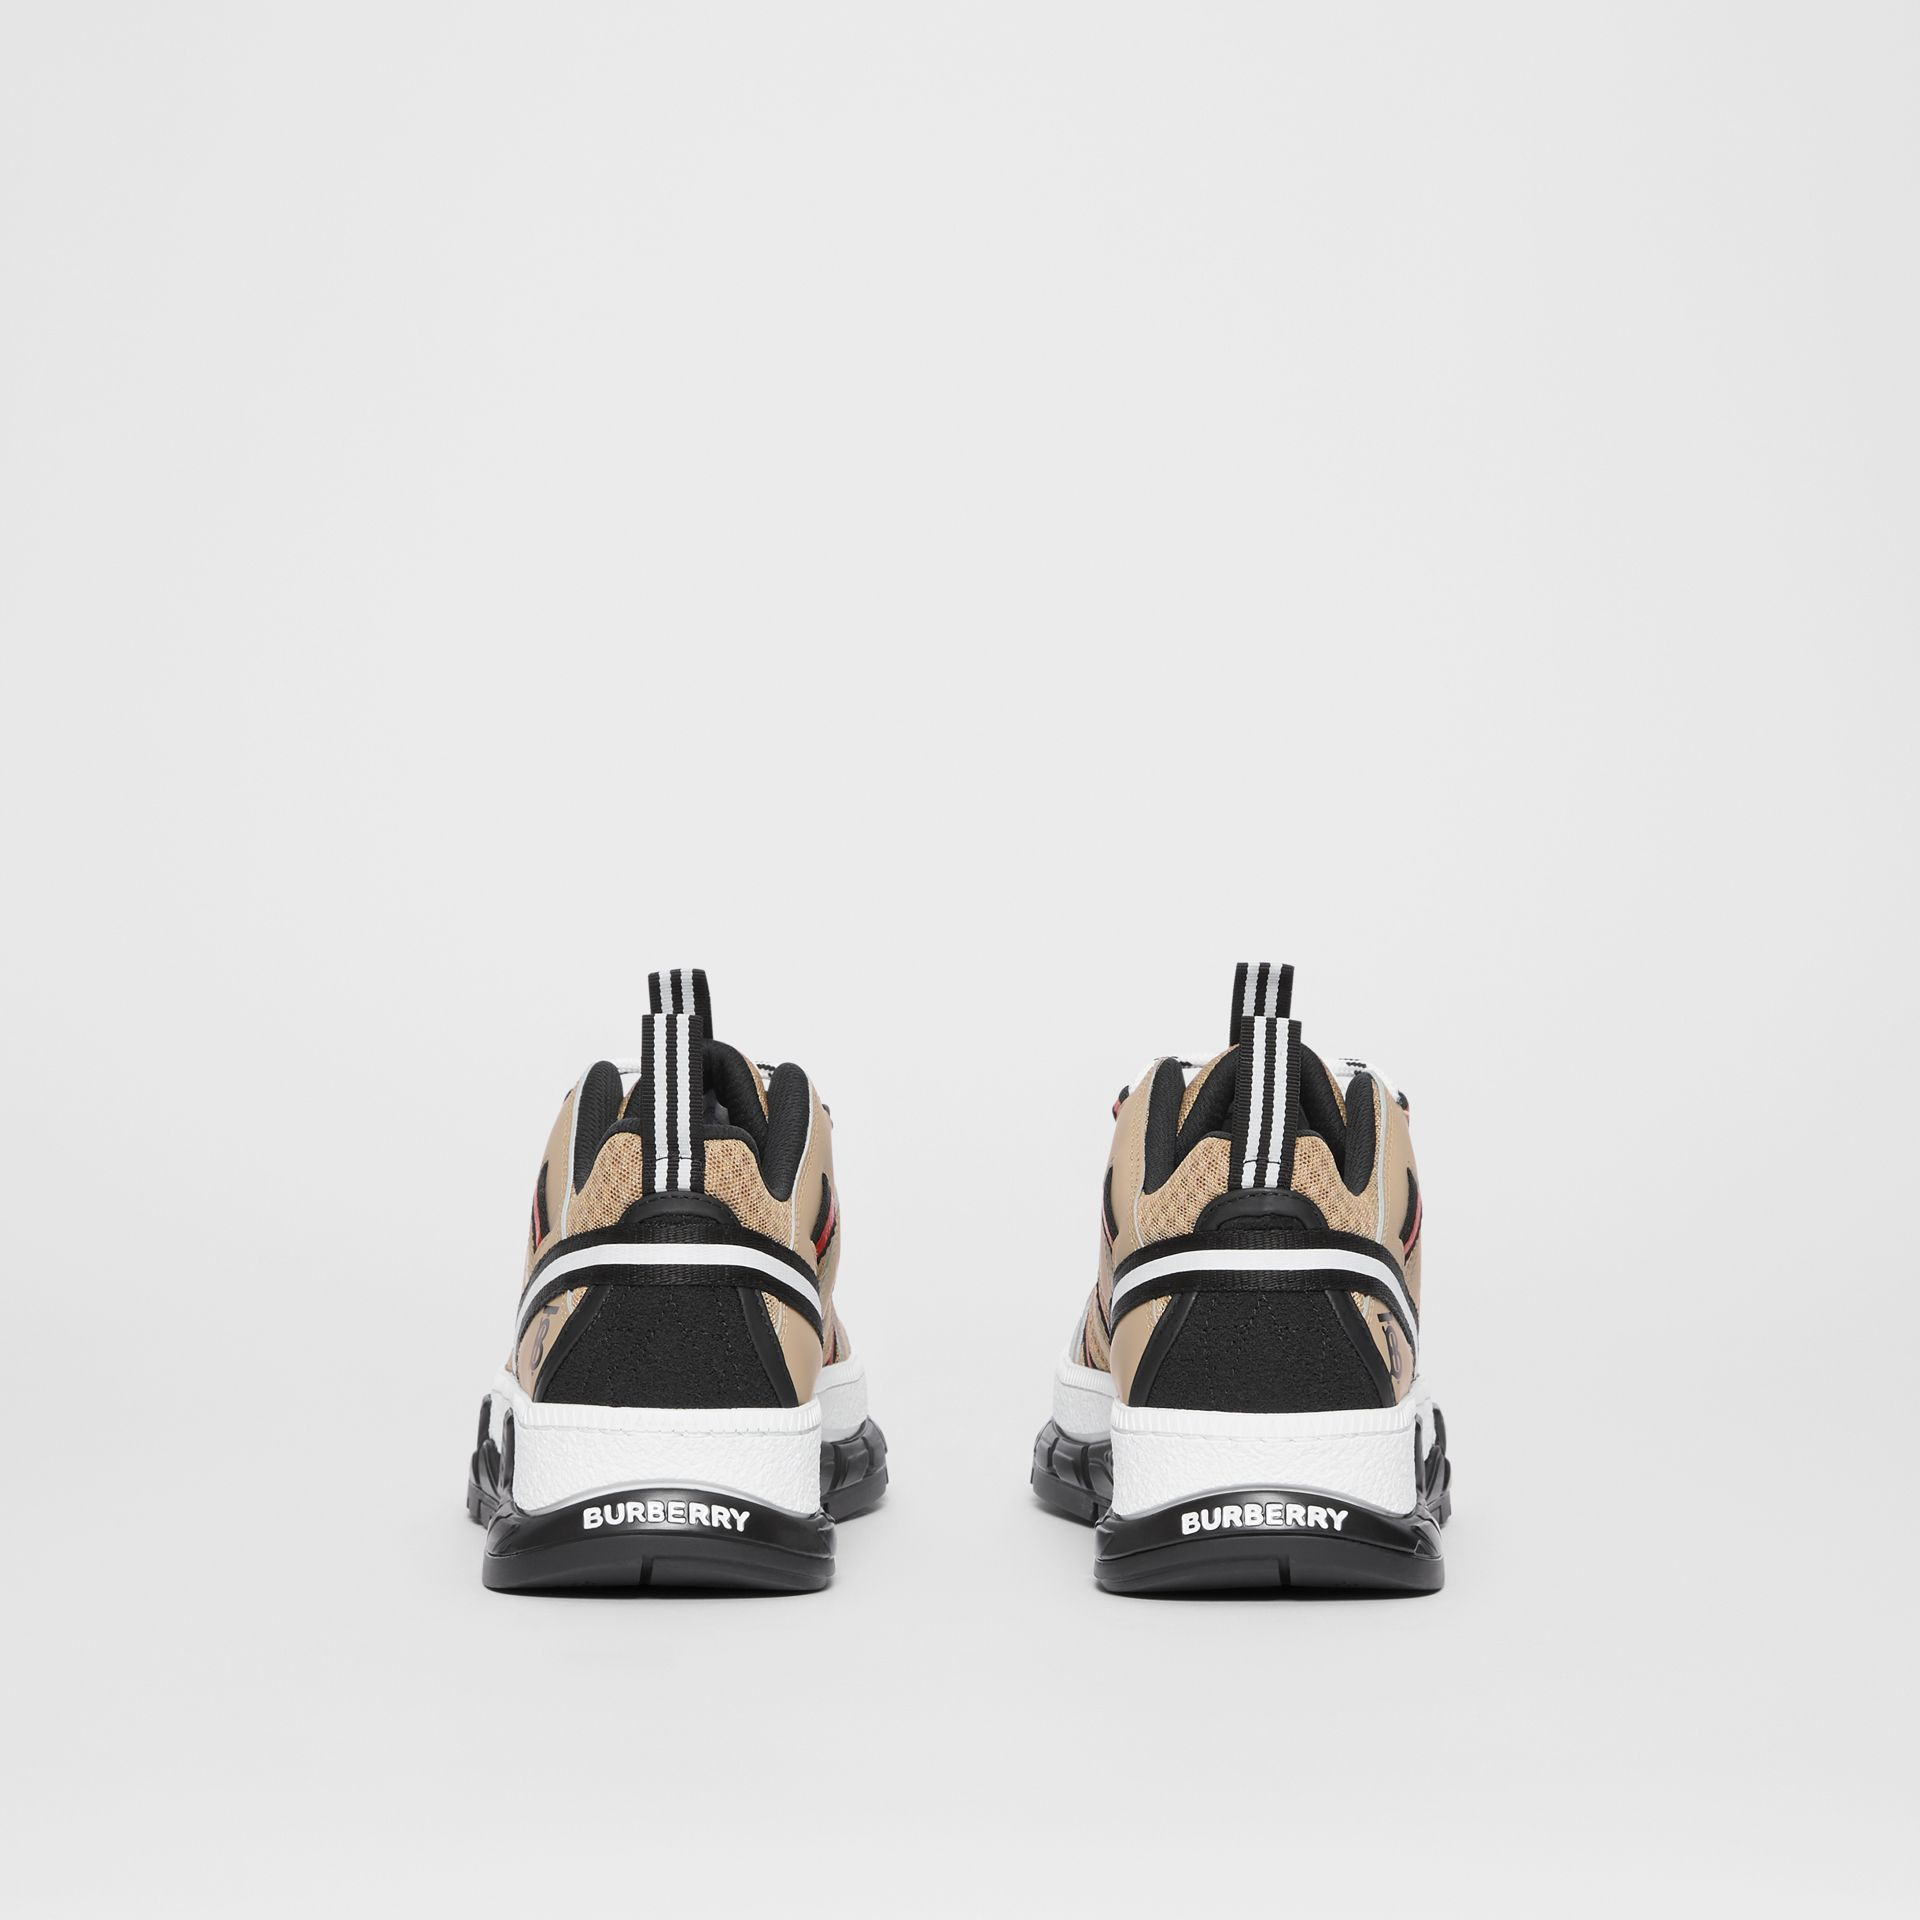 Monogram Motif Mesh and Leather Sneakers in Beige - Women | Burberry - gallery image 3